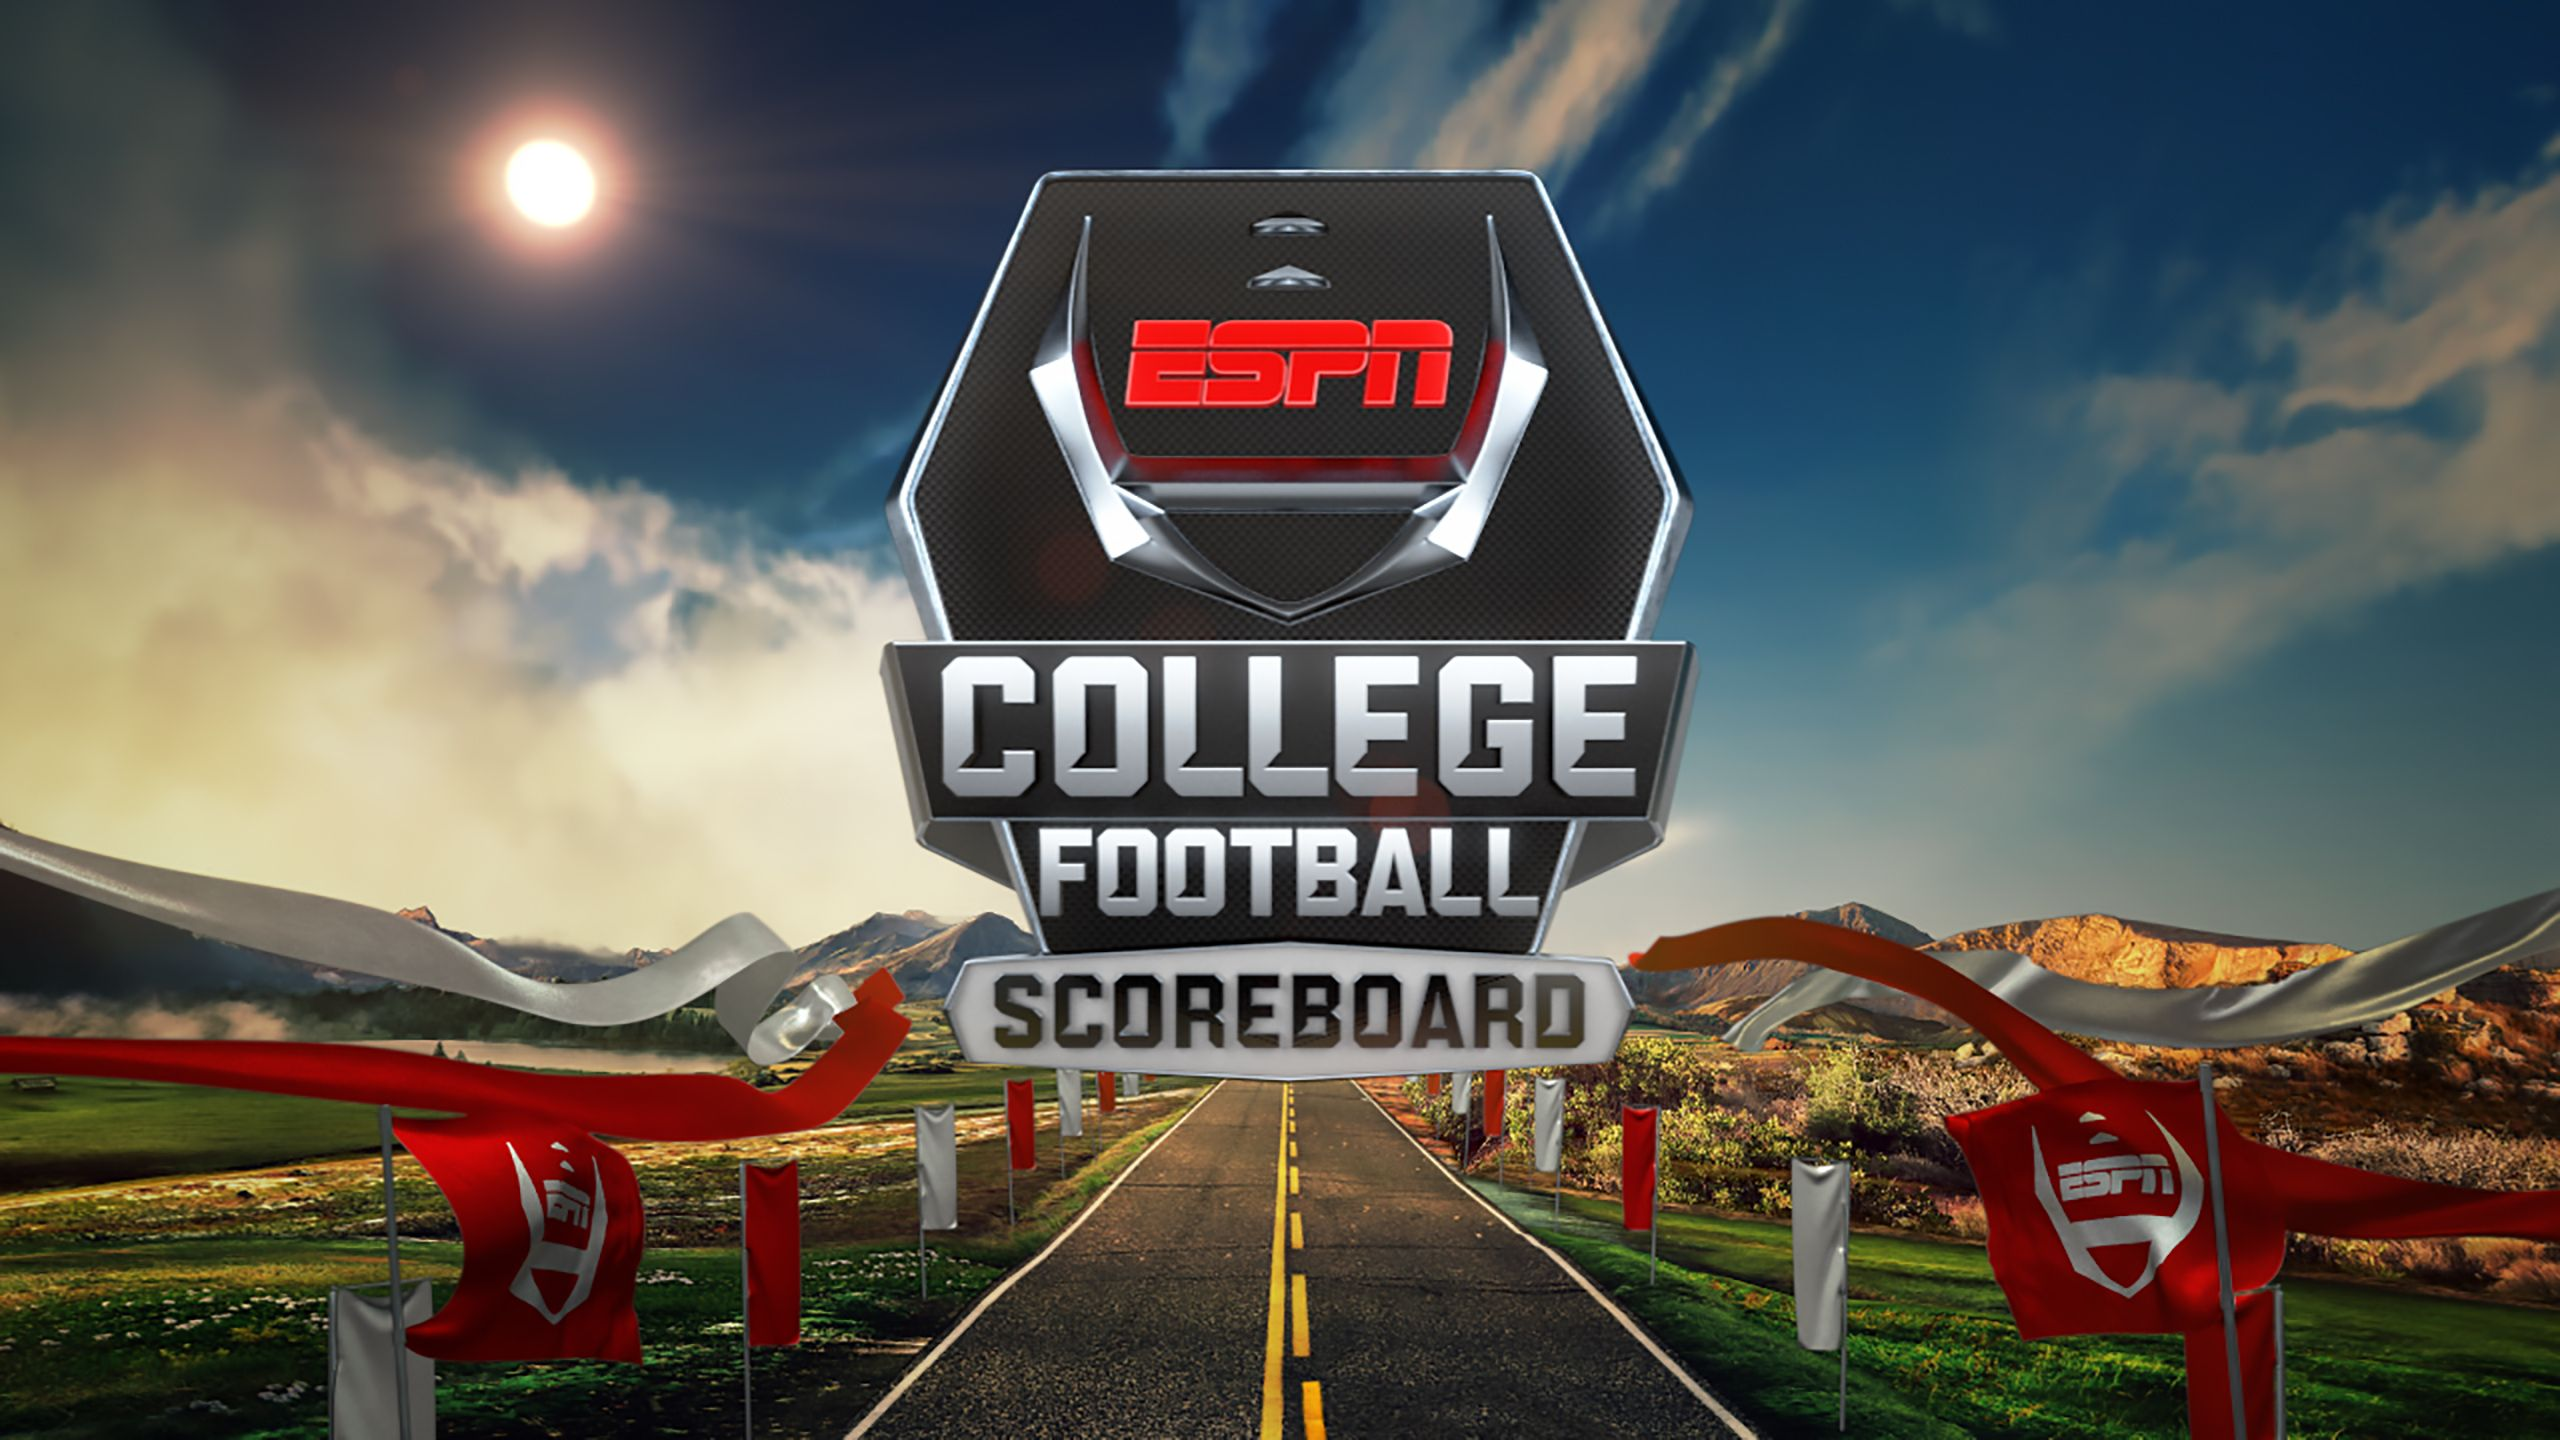 College Football Scoreboard Presented by Honda